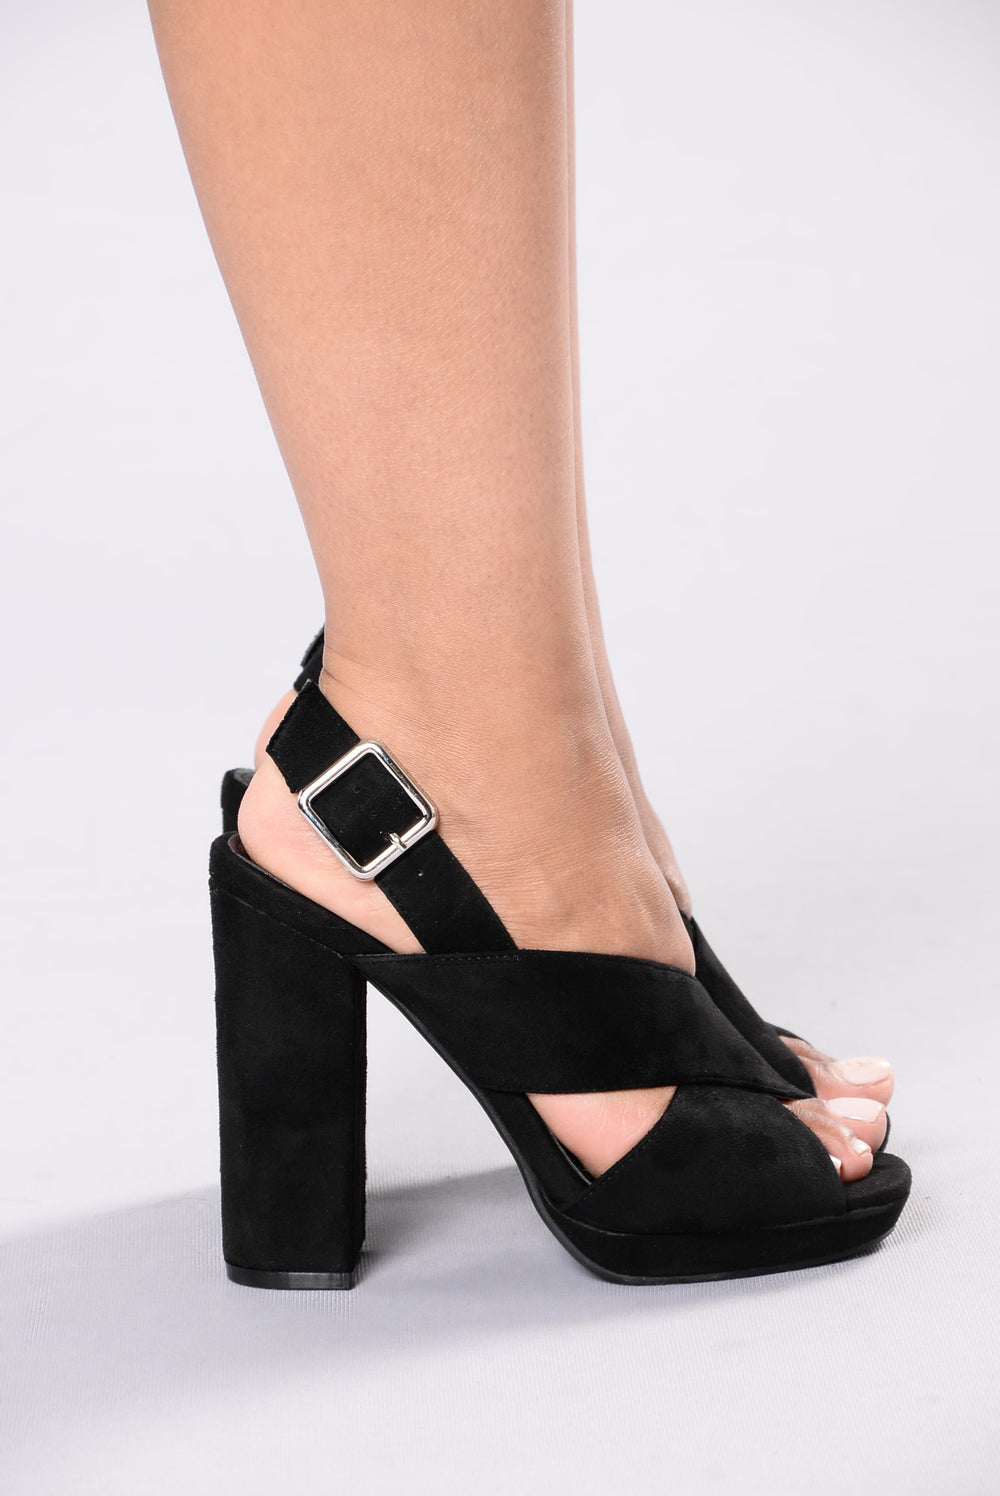 See What I Might Do Heel - Black